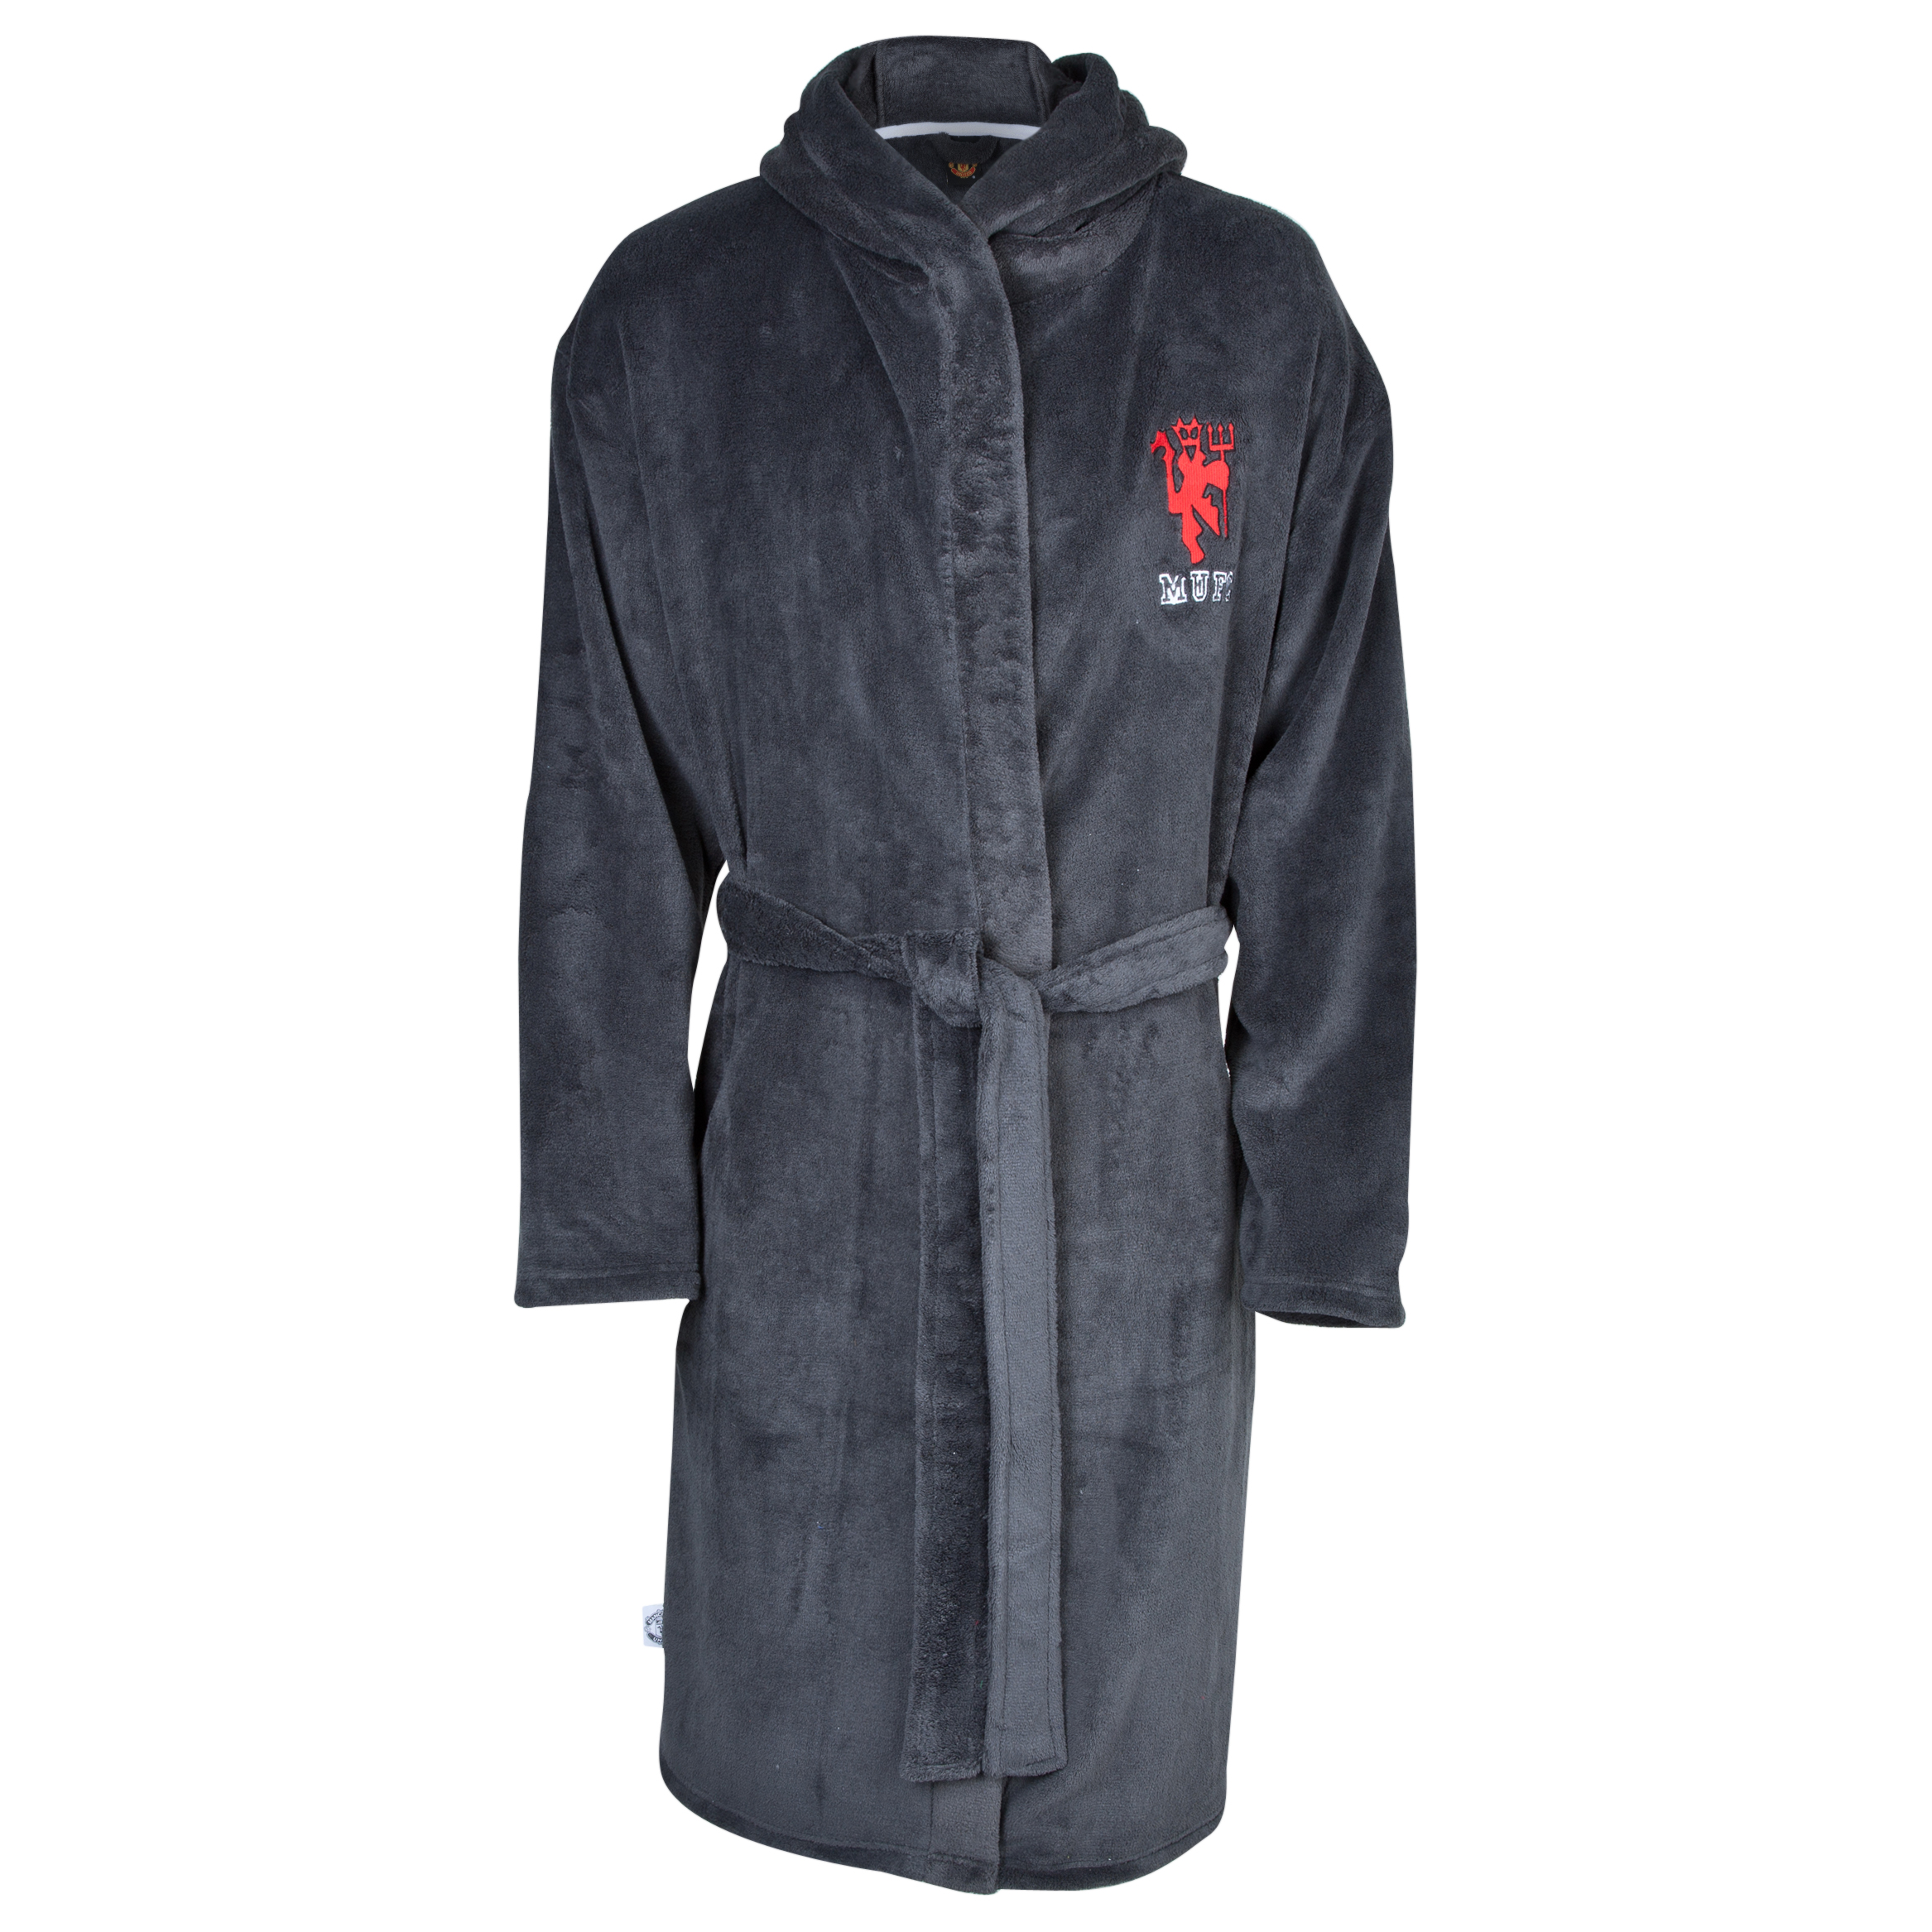 Manchester United Devil Hooded Robe - Older Boys Charcoal